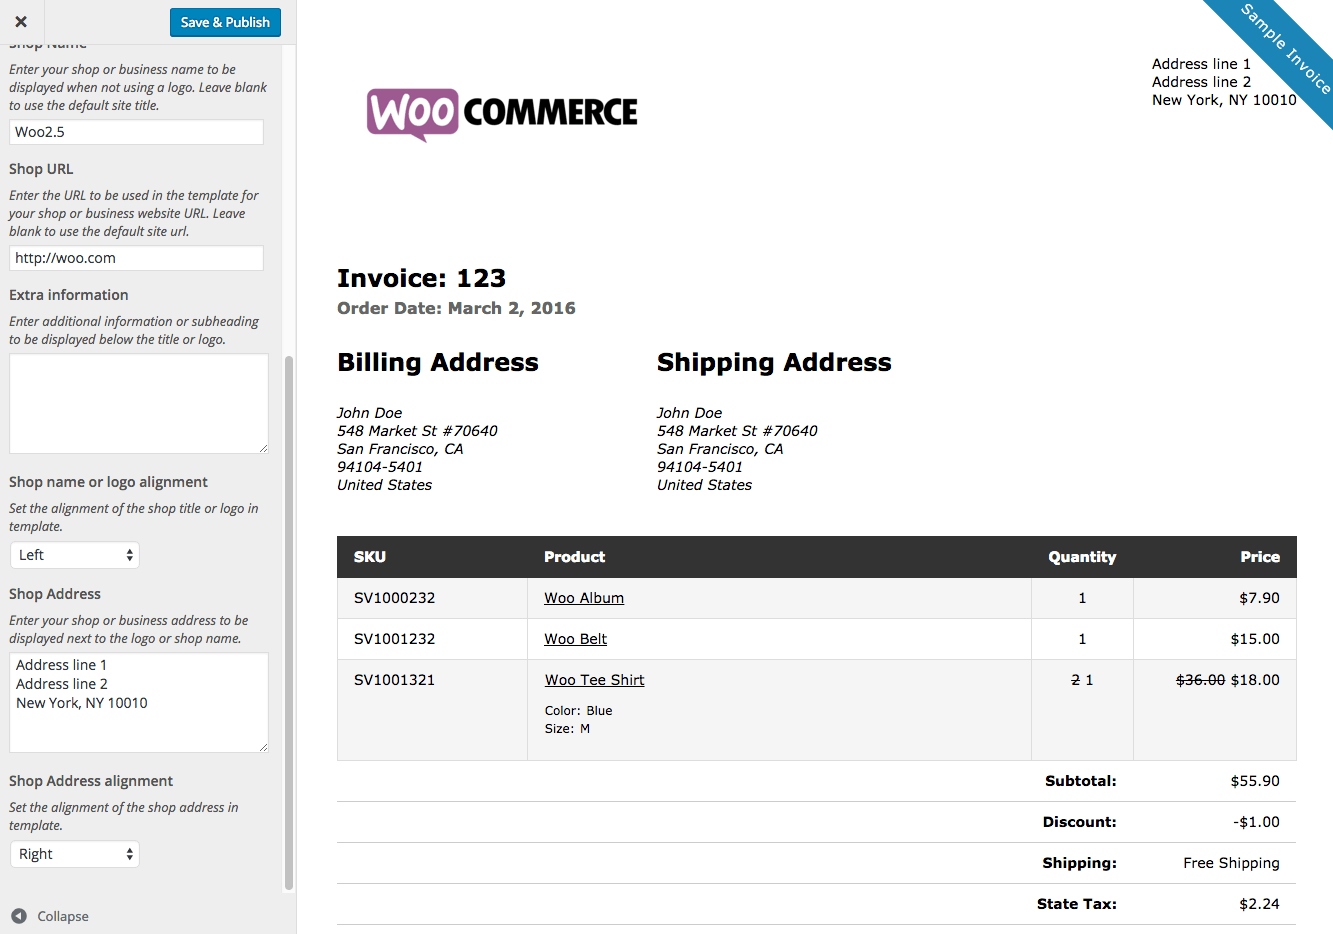 Aaaaeroincus  Pretty Woocommerce Print Invoices Amp Packing Lists  Woocommerce Docs With Handsome Woocommerce Print Invoices  Packing Lists Customizer With Extraordinary Proforma Invoice In Word Format Also An Example Of An Invoice In Addition Free Invoicing Software Reviews And Customizable Invoice Software As Well As Invoice Help Additionally How To Create Your Own Invoice From Docswoocommercecom With Aaaaeroincus  Handsome Woocommerce Print Invoices Amp Packing Lists  Woocommerce Docs With Extraordinary Woocommerce Print Invoices  Packing Lists Customizer And Pretty Proforma Invoice In Word Format Also An Example Of An Invoice In Addition Free Invoicing Software Reviews From Docswoocommercecom